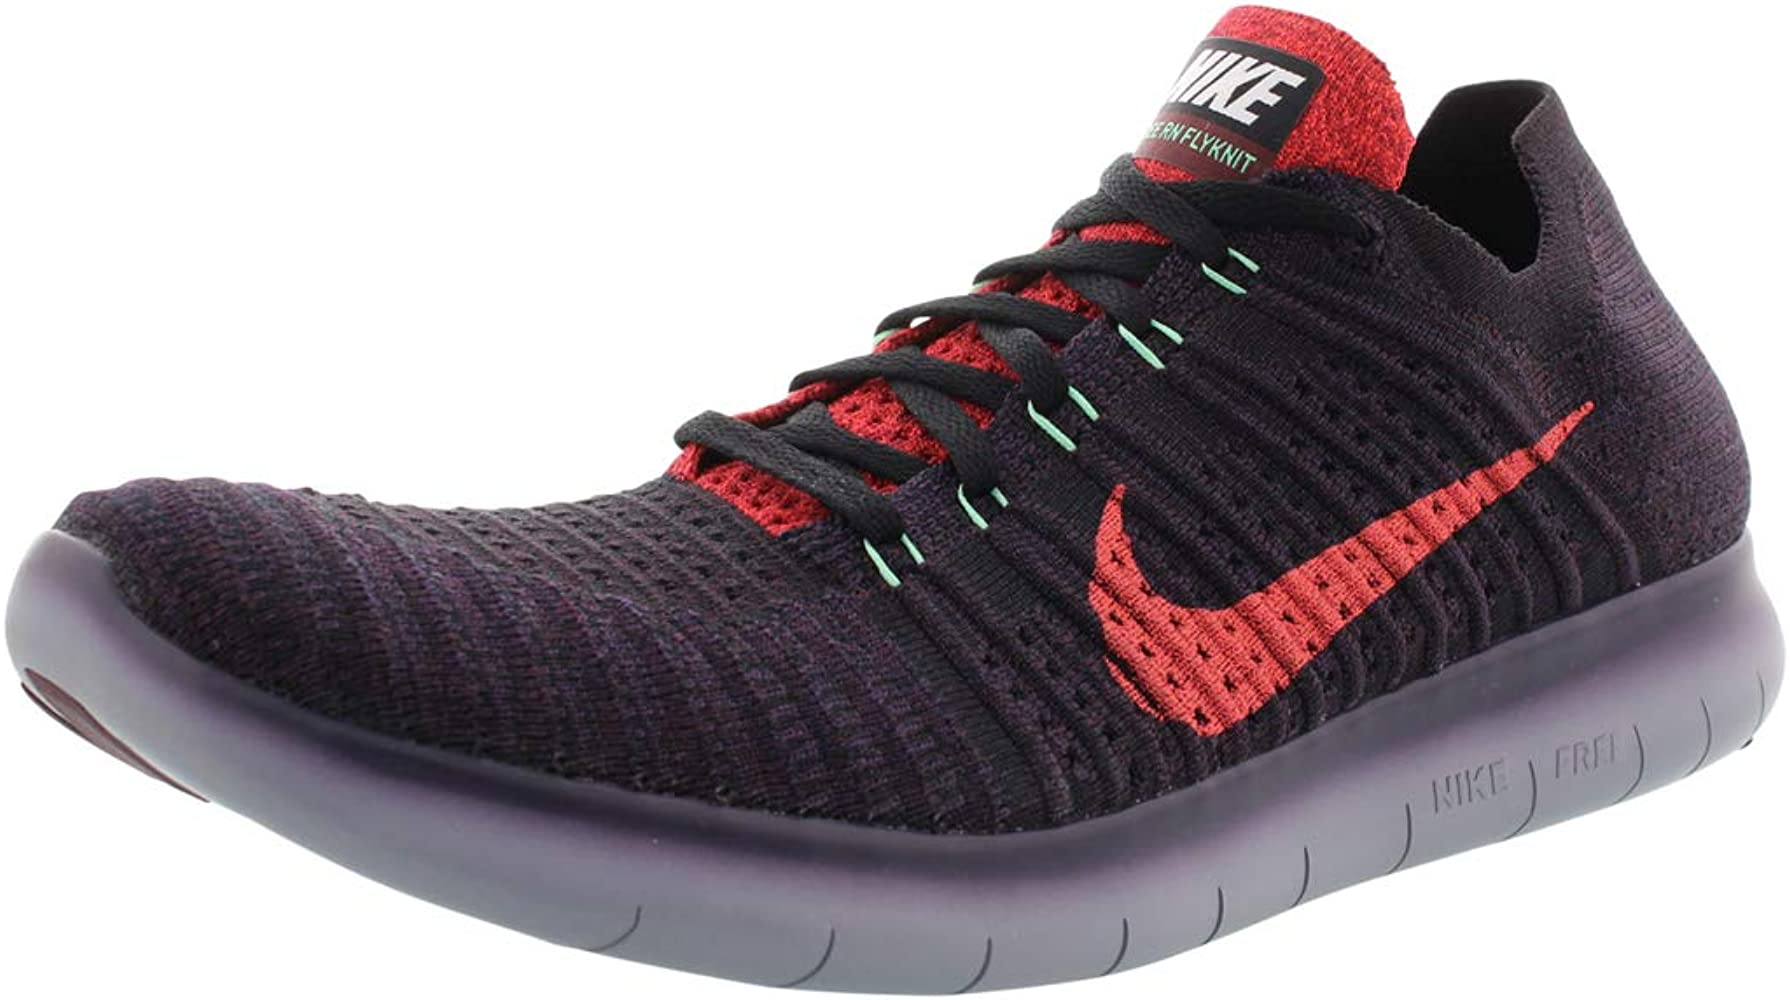 Nike 831069-603, Zapatillas de Trail Running para Hombre, Rojo (Night Maroon/Bright Crimson), 40.5 EU: Amazon.es: Zapatos y complementos